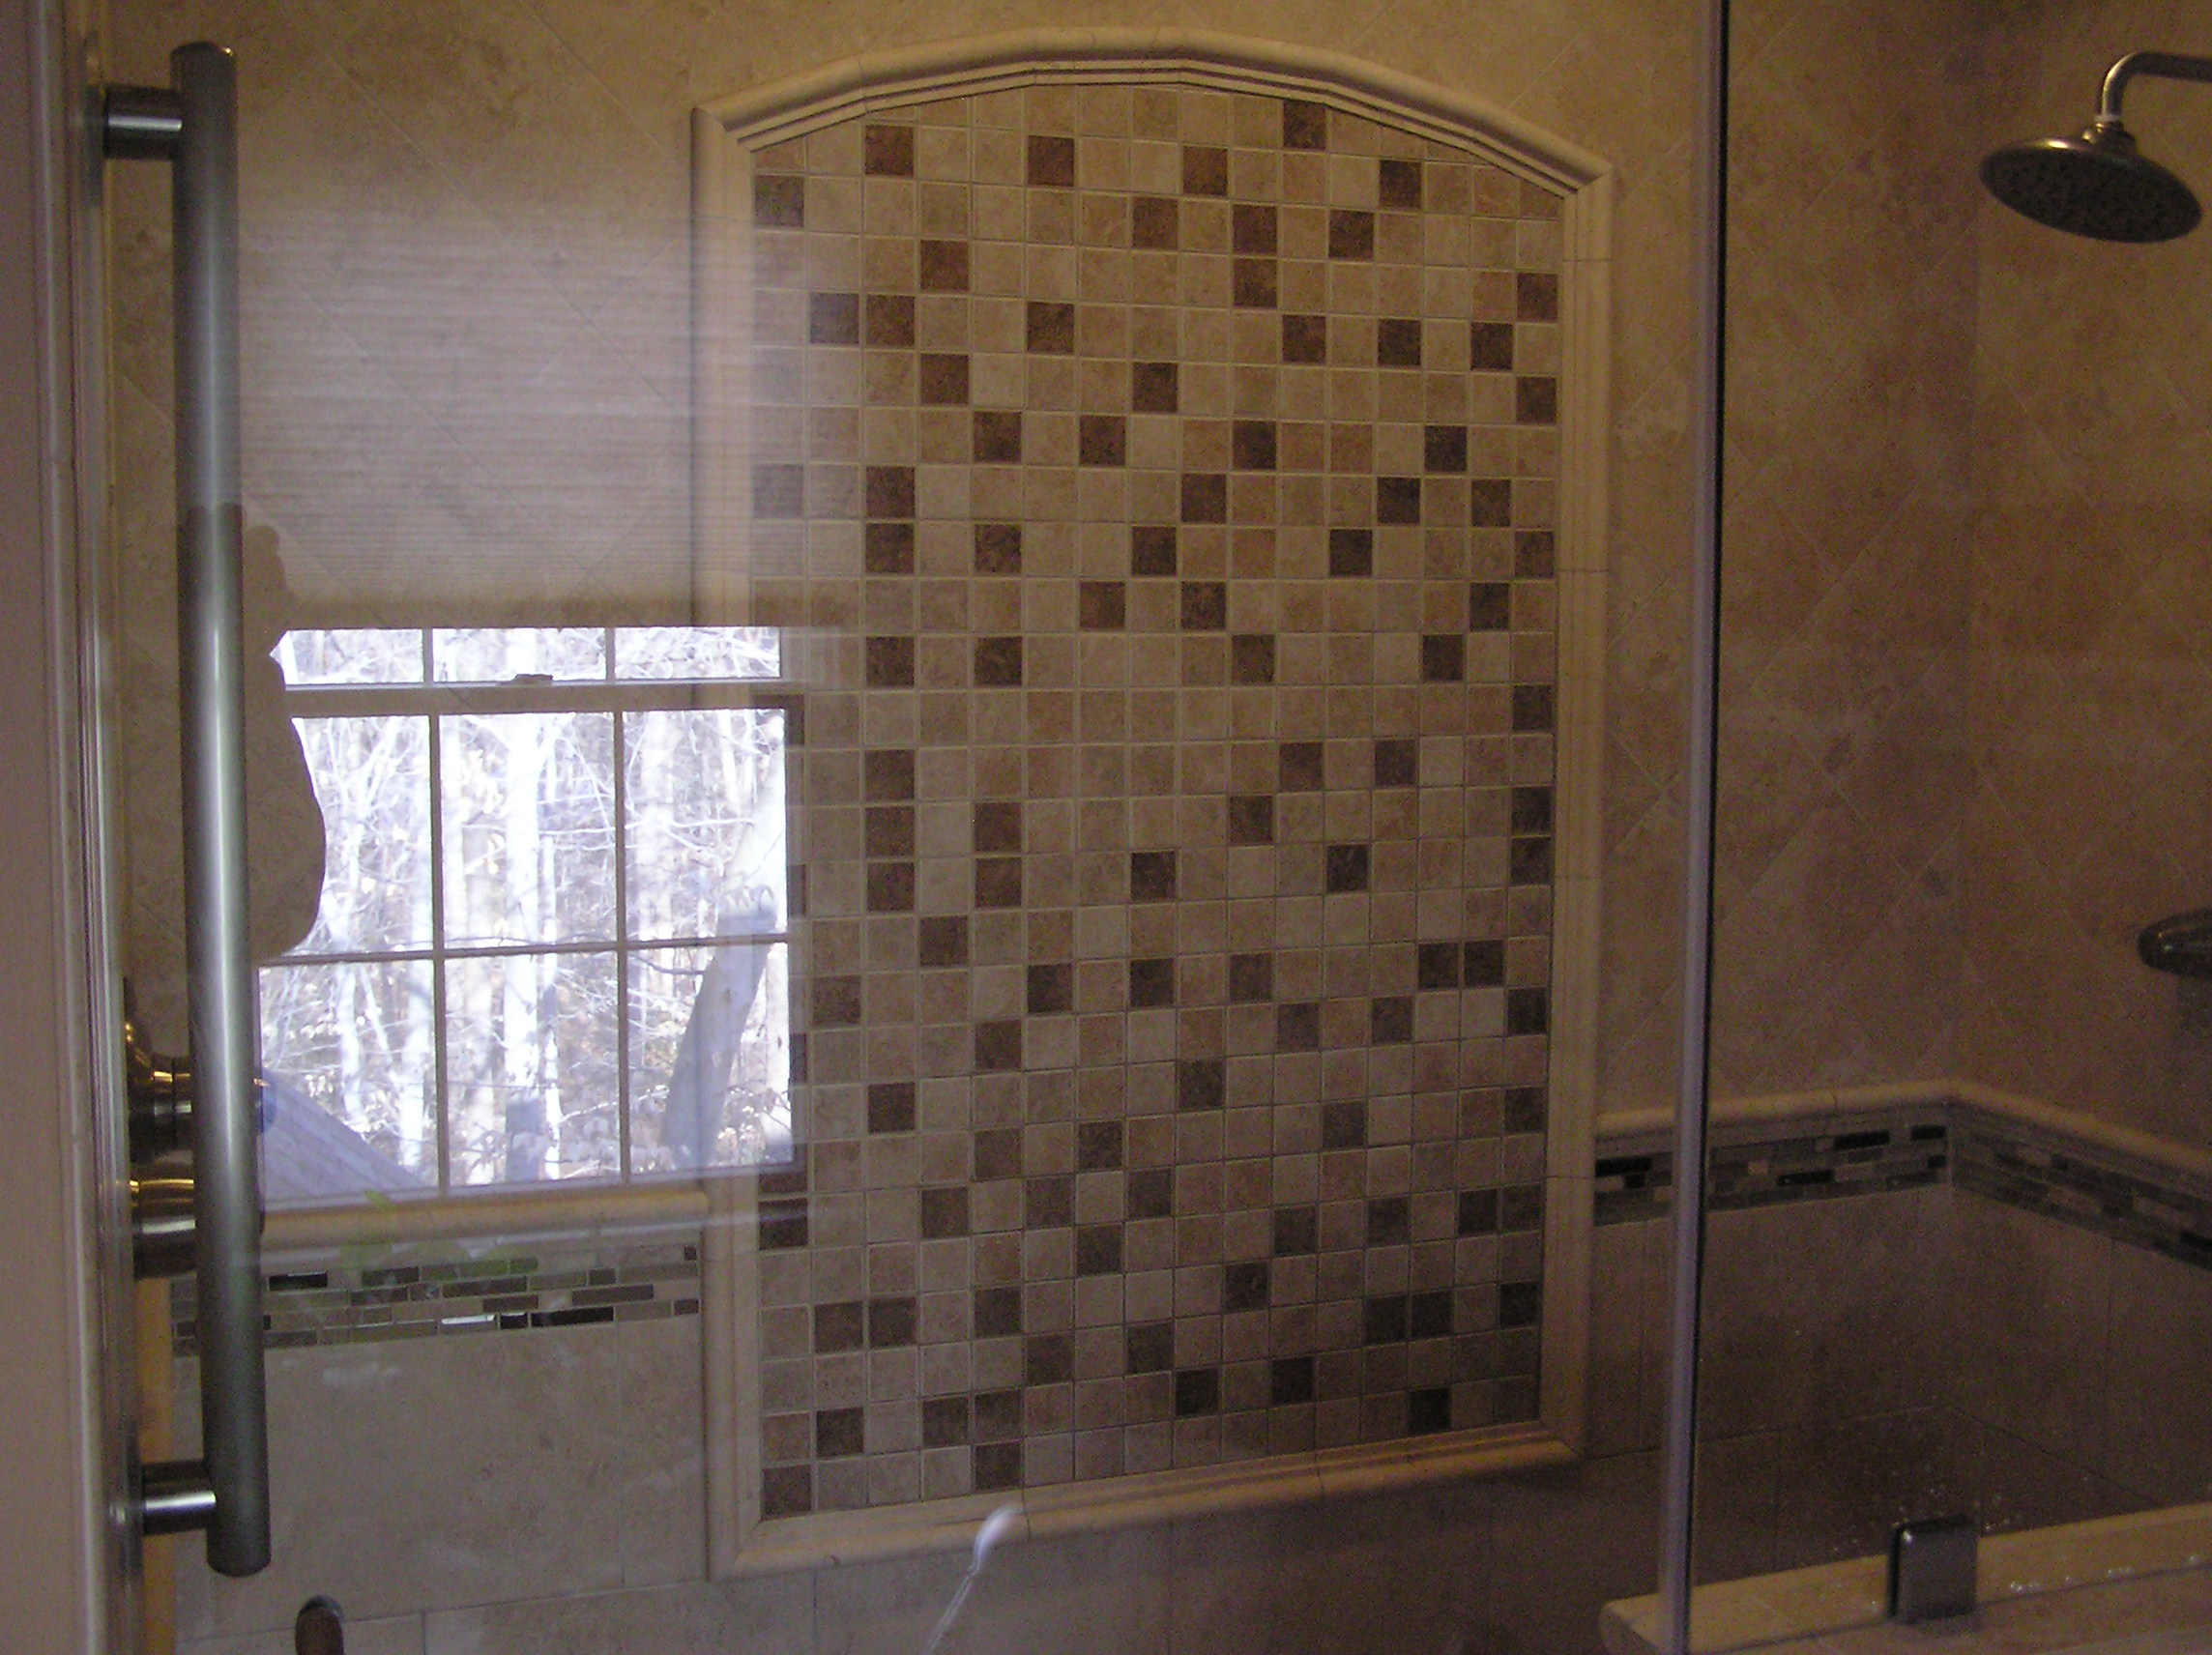 olympus digital camera - Bath Shower Tile Design Ideas